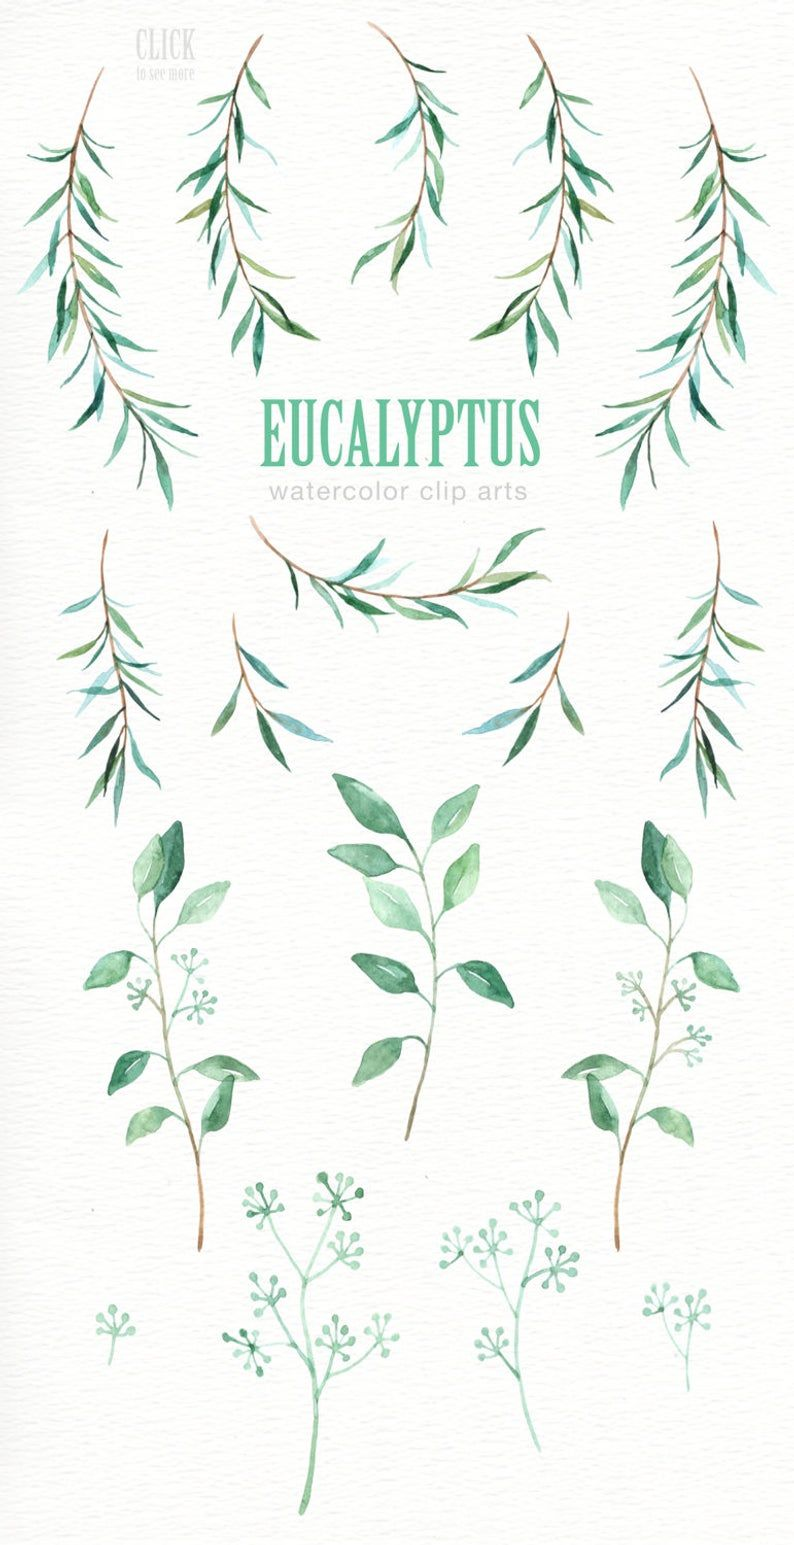 Eucalyptus Leaf Watercolor Clipart Watercolor Flower Watercolour